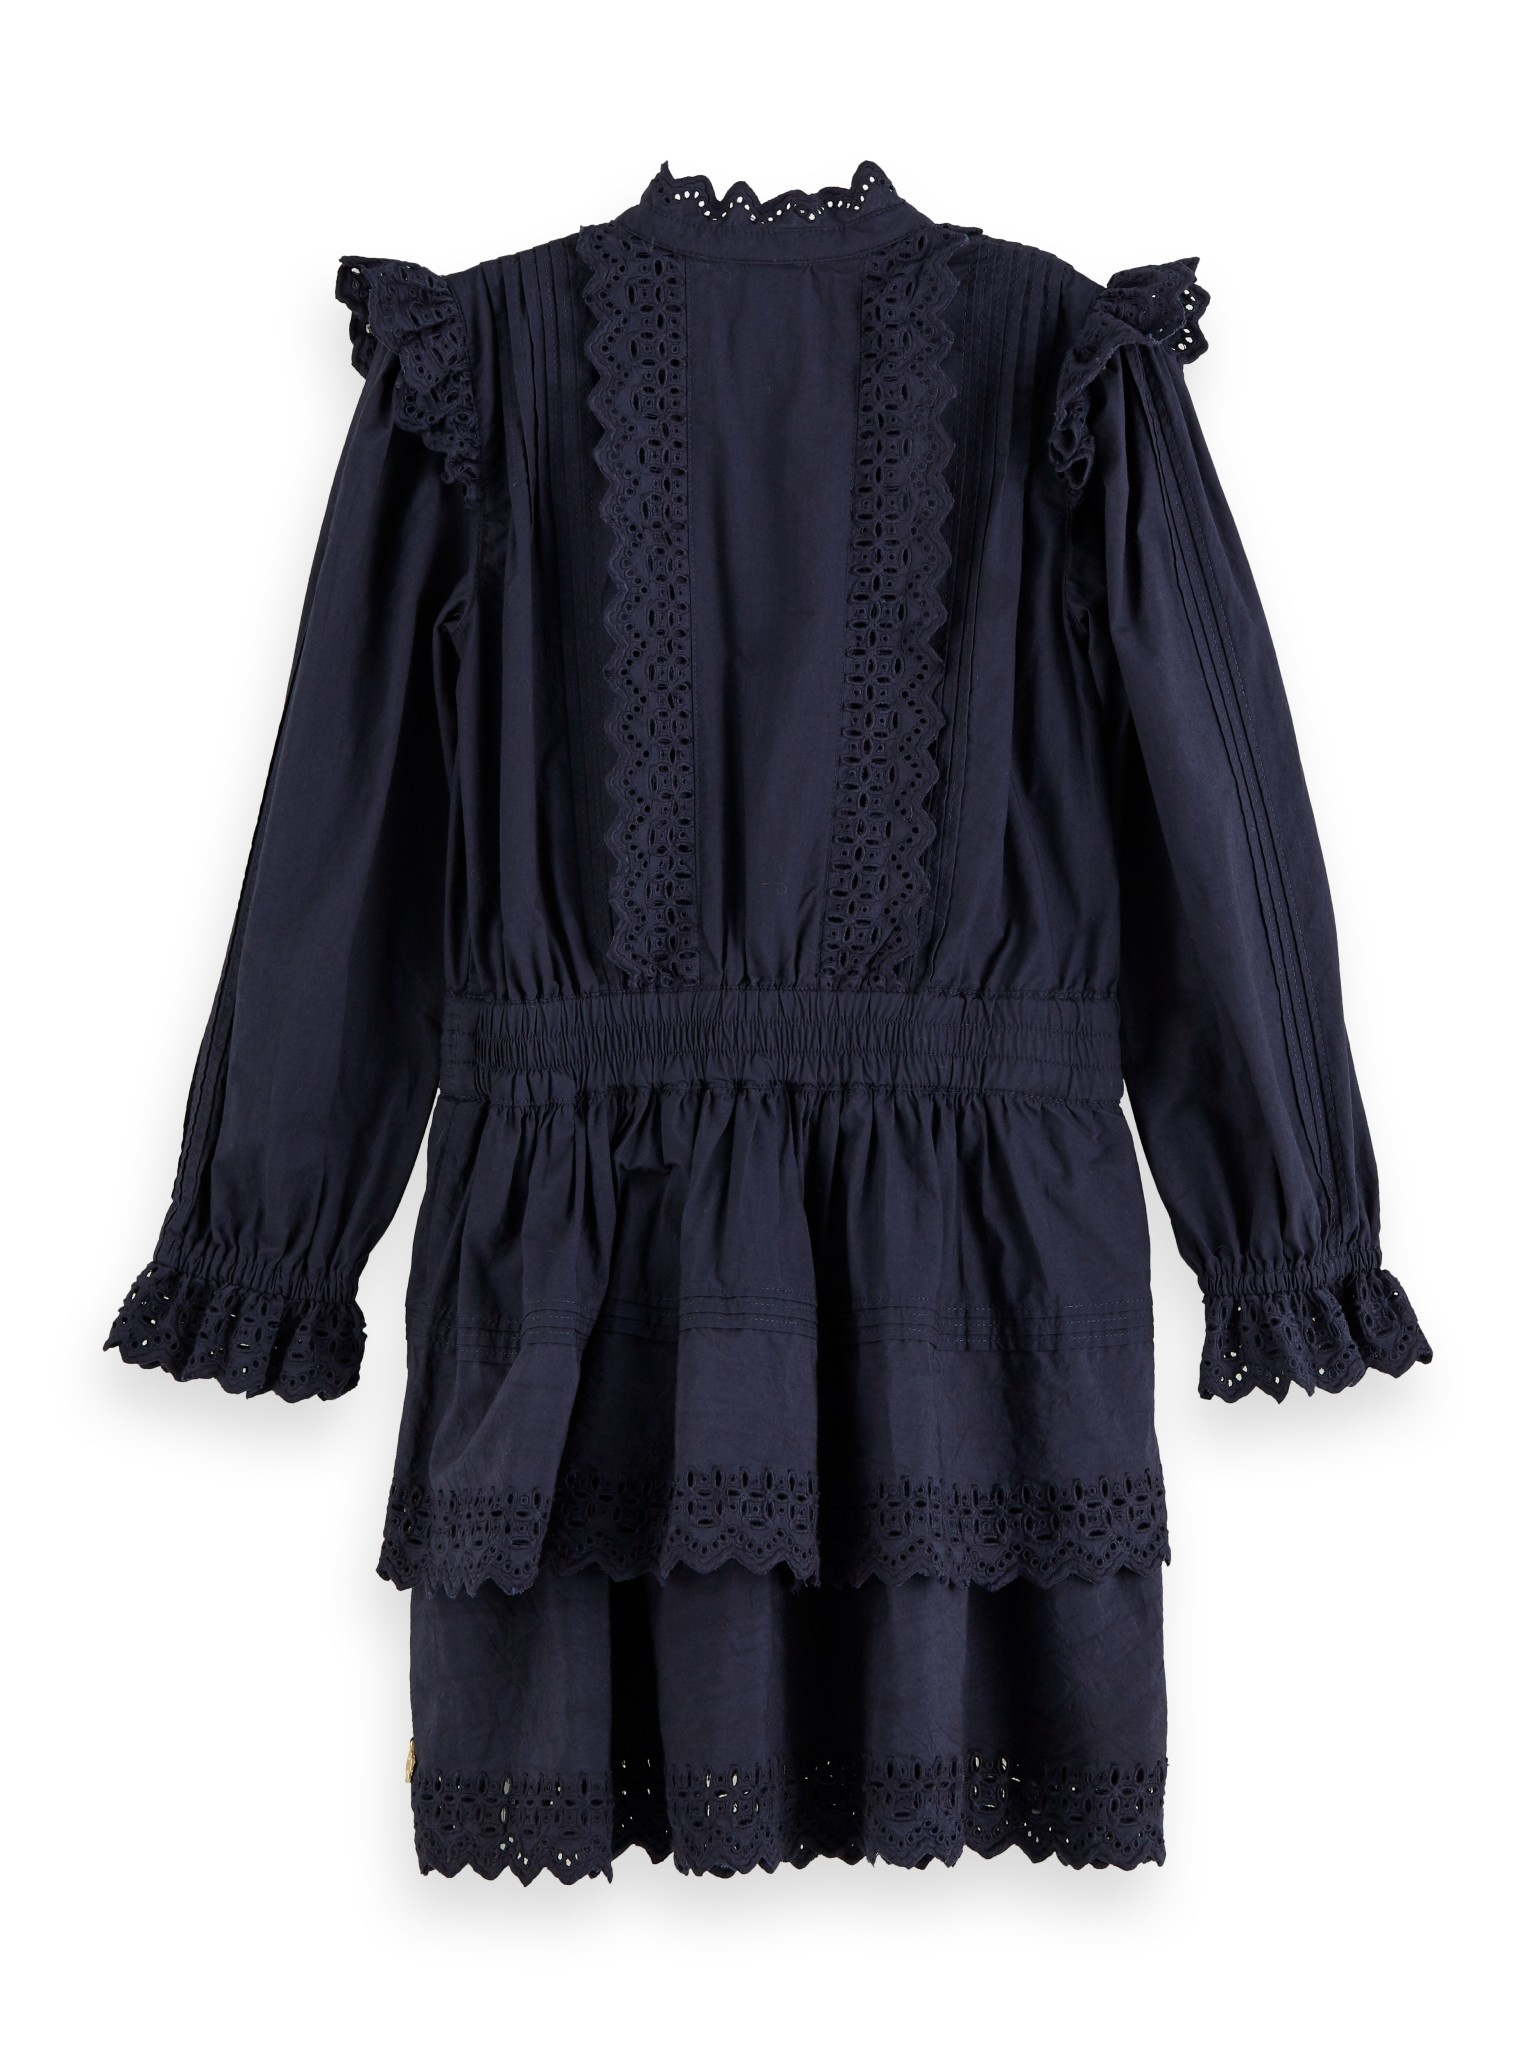 Scotch Rbelle Scotch - Dress with broderie anglaise 0002, 158172